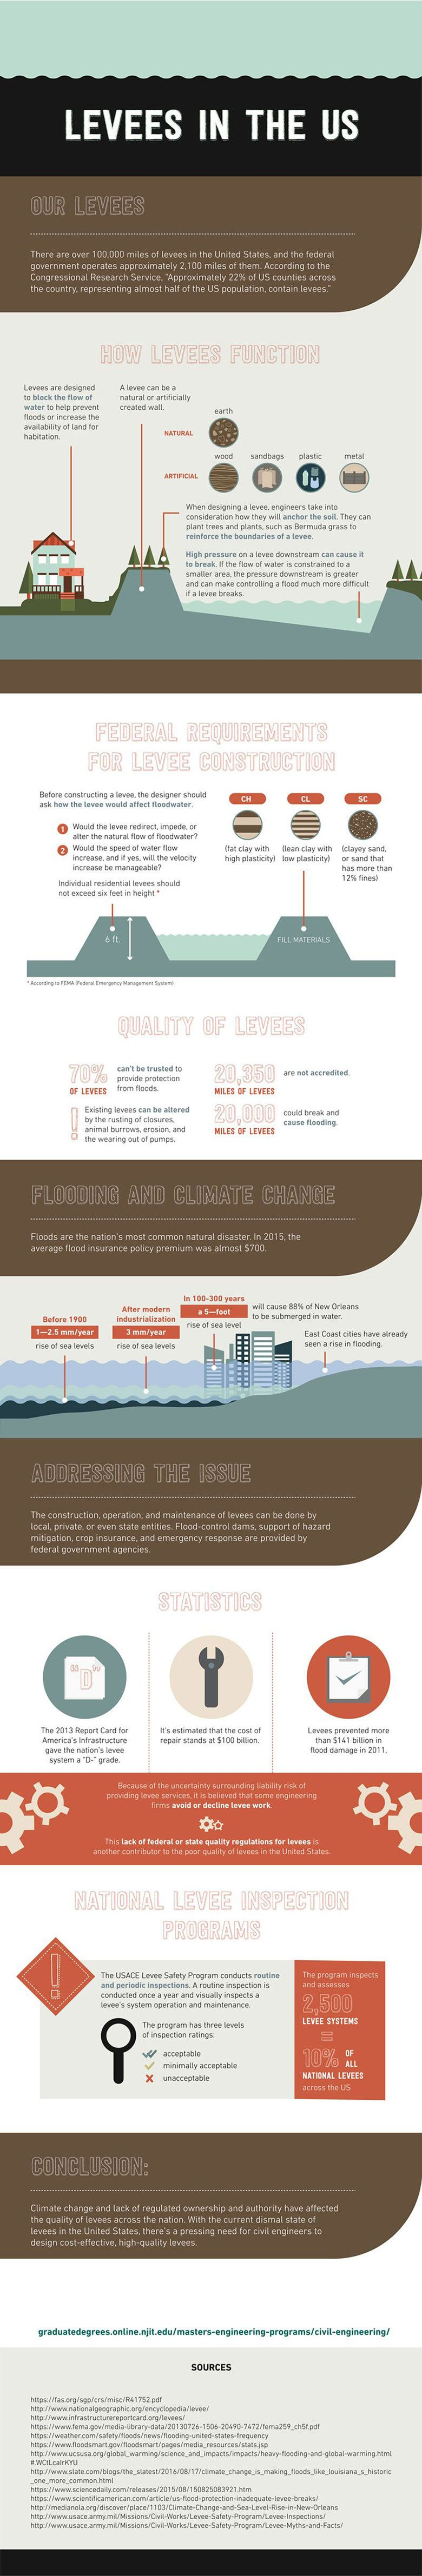 Infographic on Levees in the US